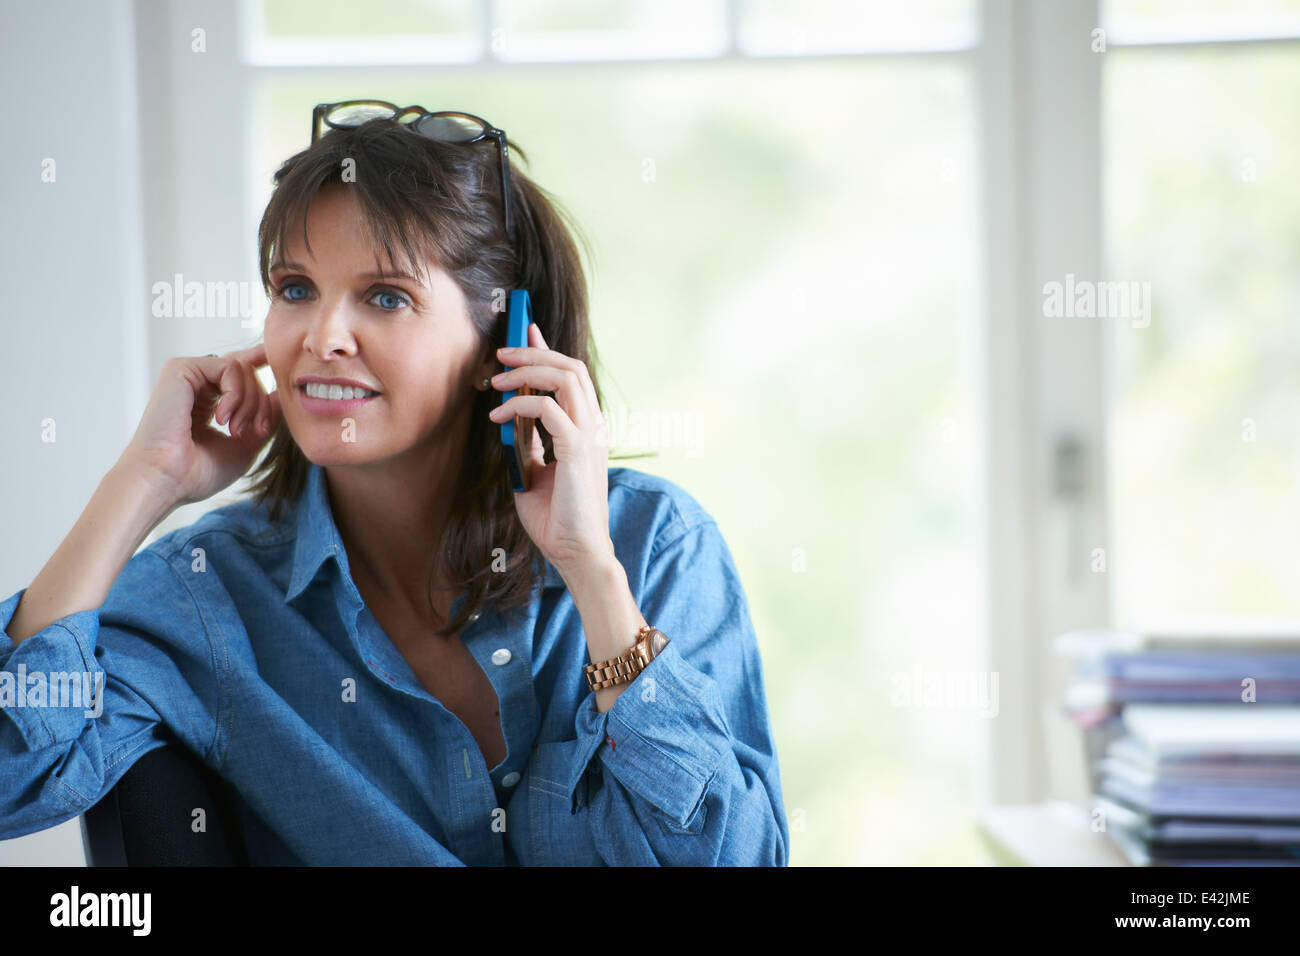 Mature woman on phonecall - Stock Image